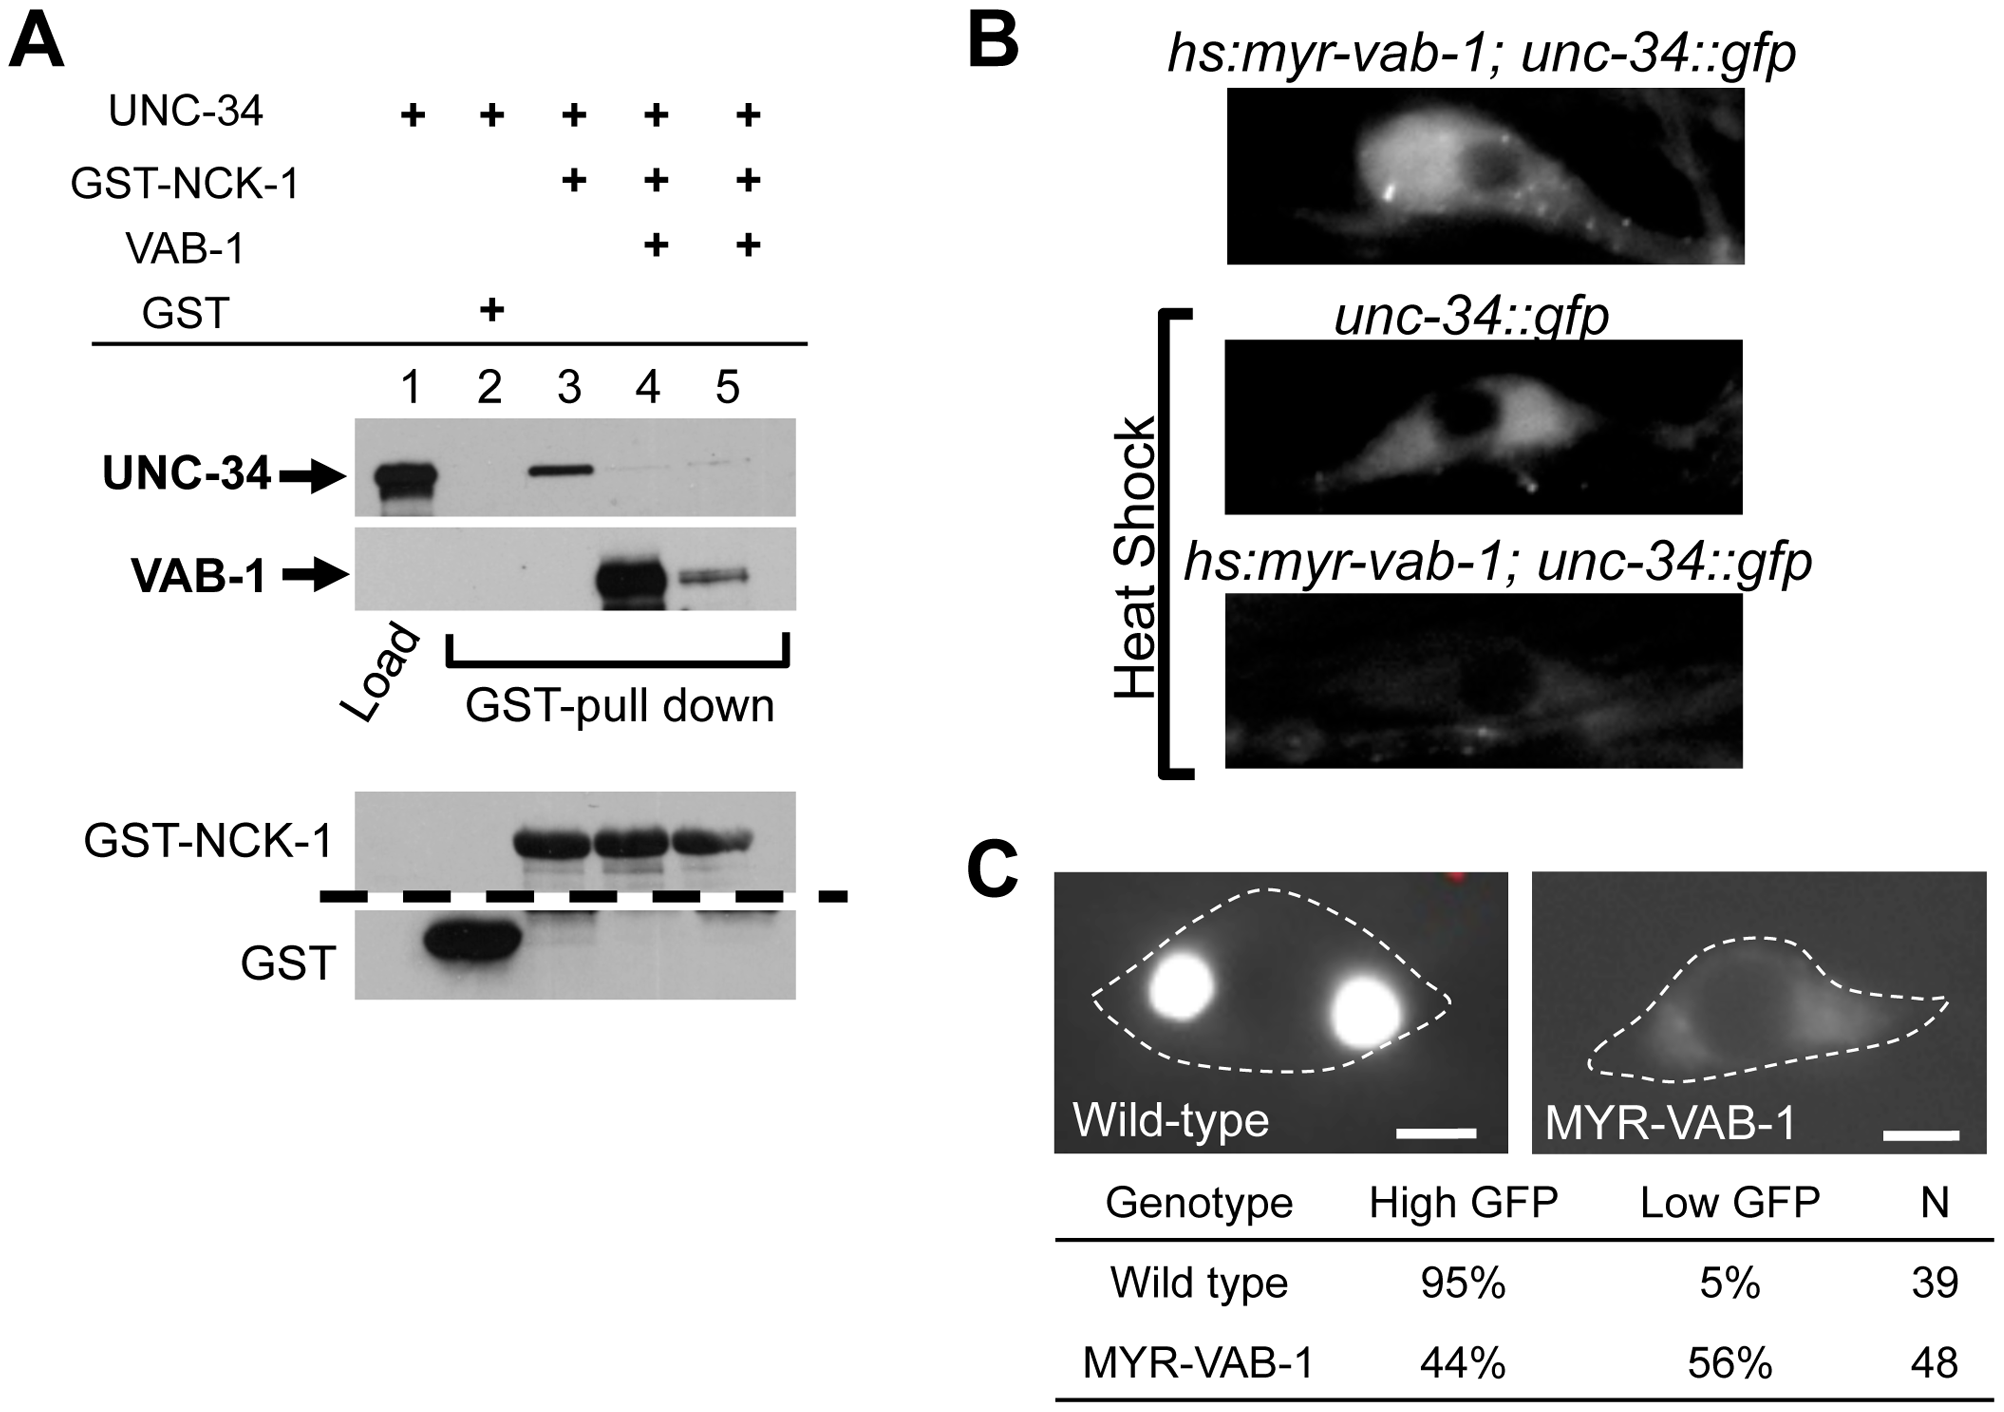 VAB-1 inhibits the UNC-34/NCK-1 complex and negatively regulates UNC-34 protein levels.